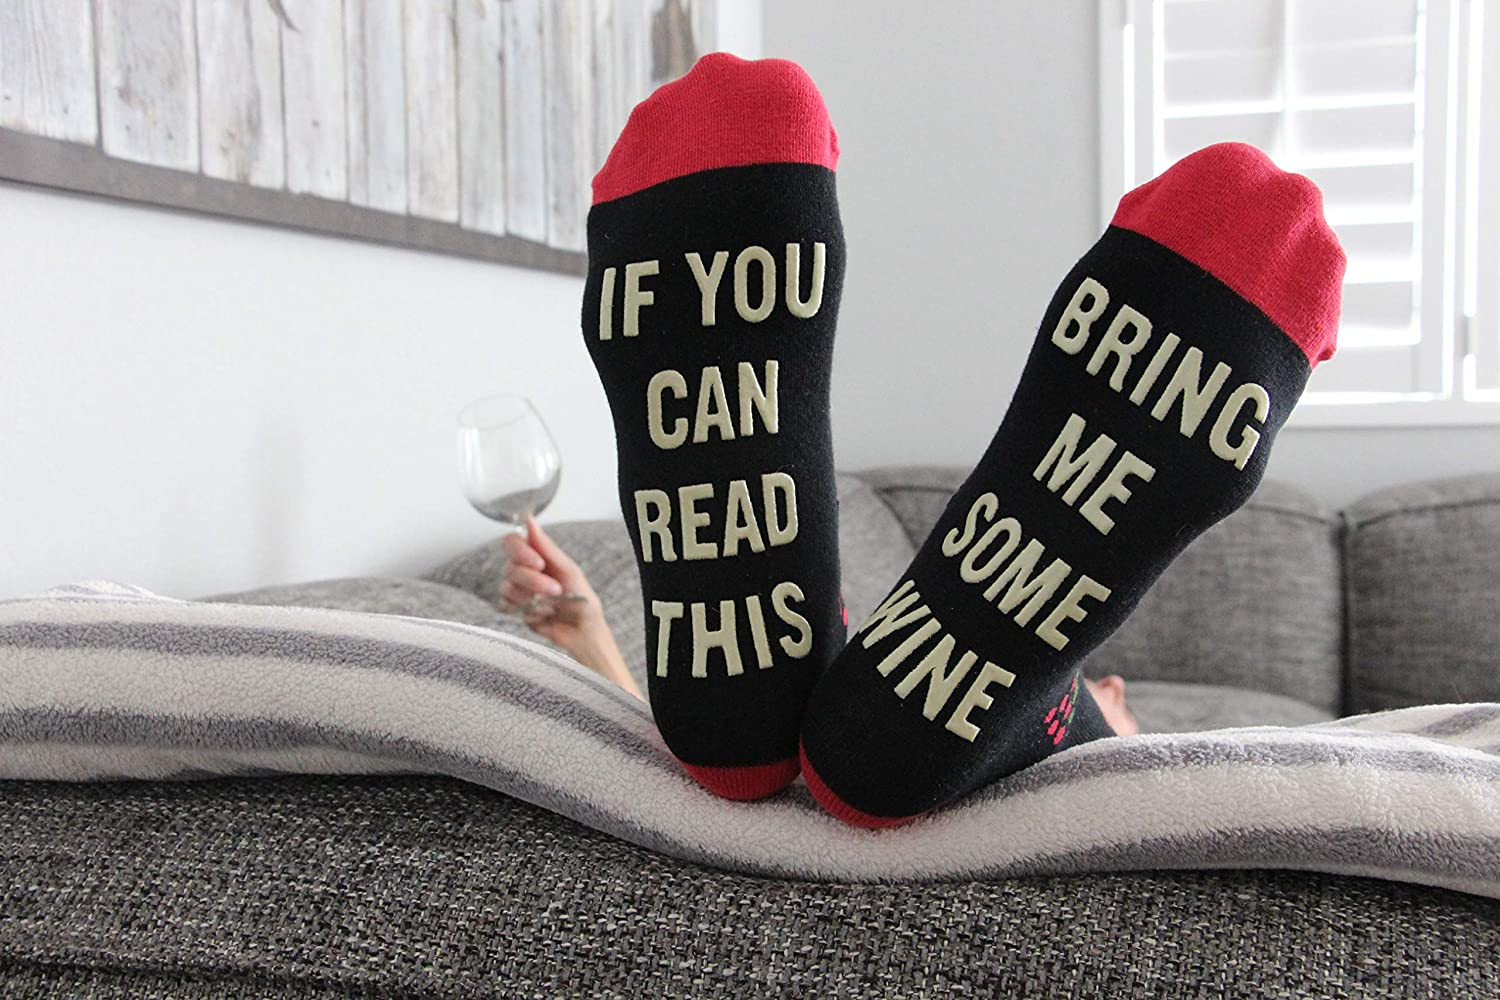 b0933ed71da9 Amazon.com: If You Can Read This Bring Me Wine - Funny Unisex Funky  Colorful and Comfy Knit Novelty Socks for Women and Men - By Lavley:  Clothing